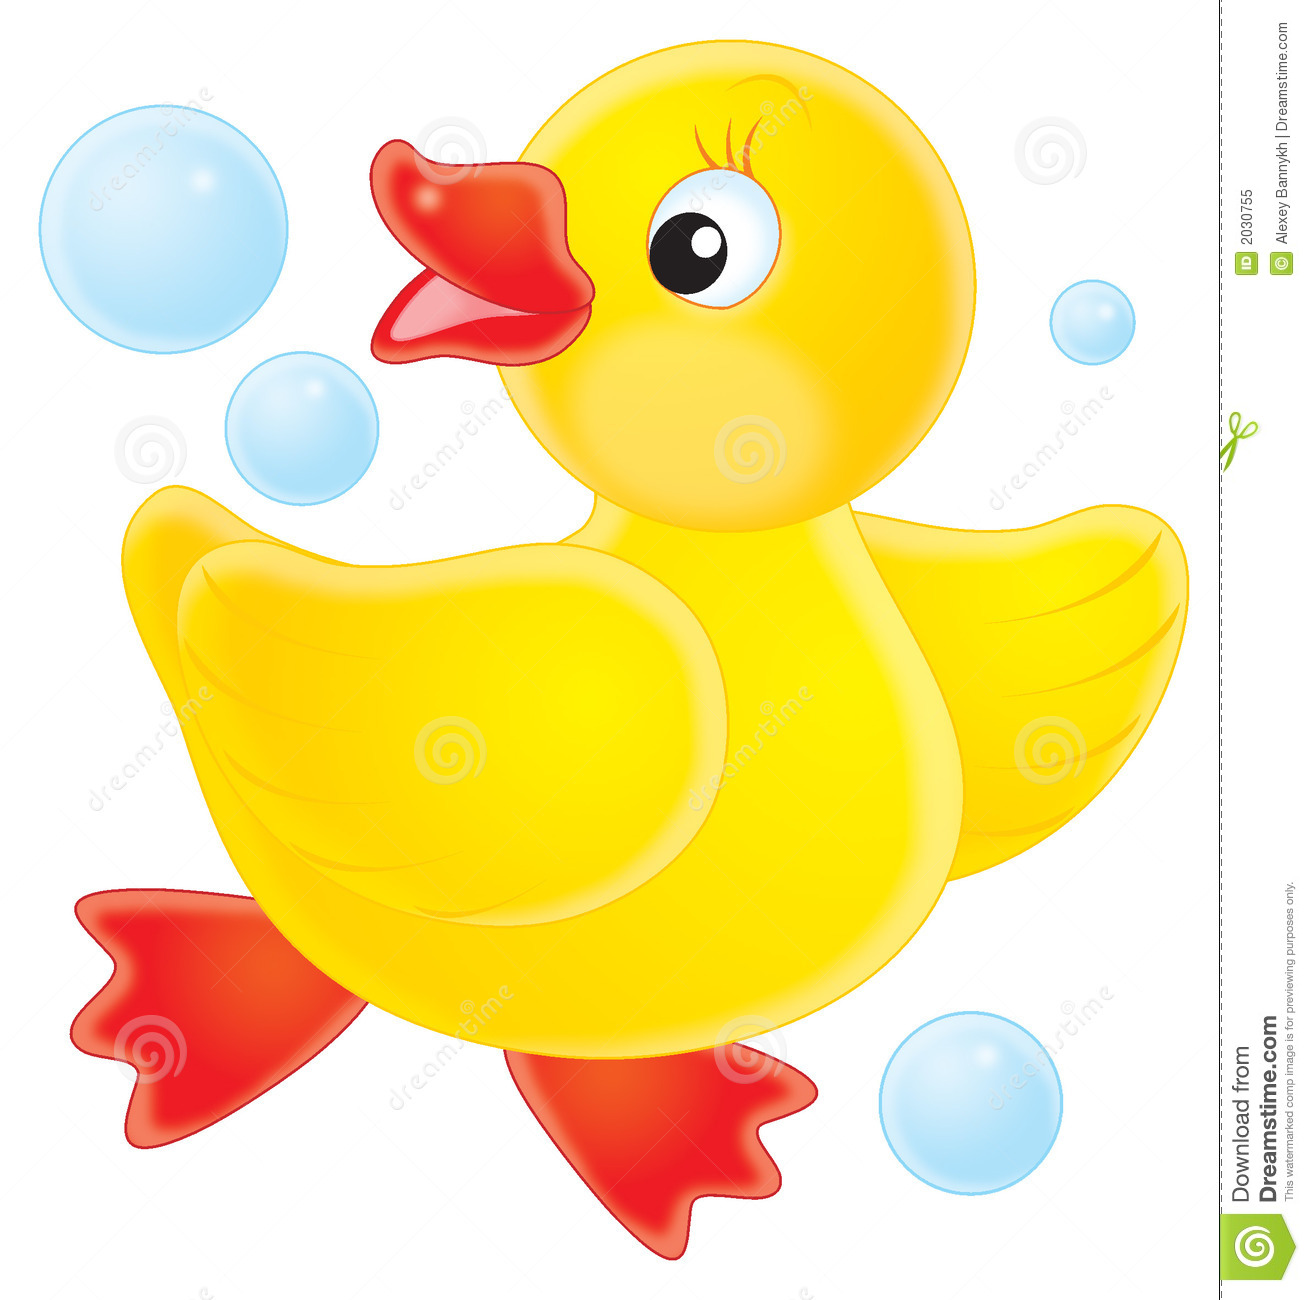 Baby Duckling Clipart | Clipart Panda - Free Clipart Images